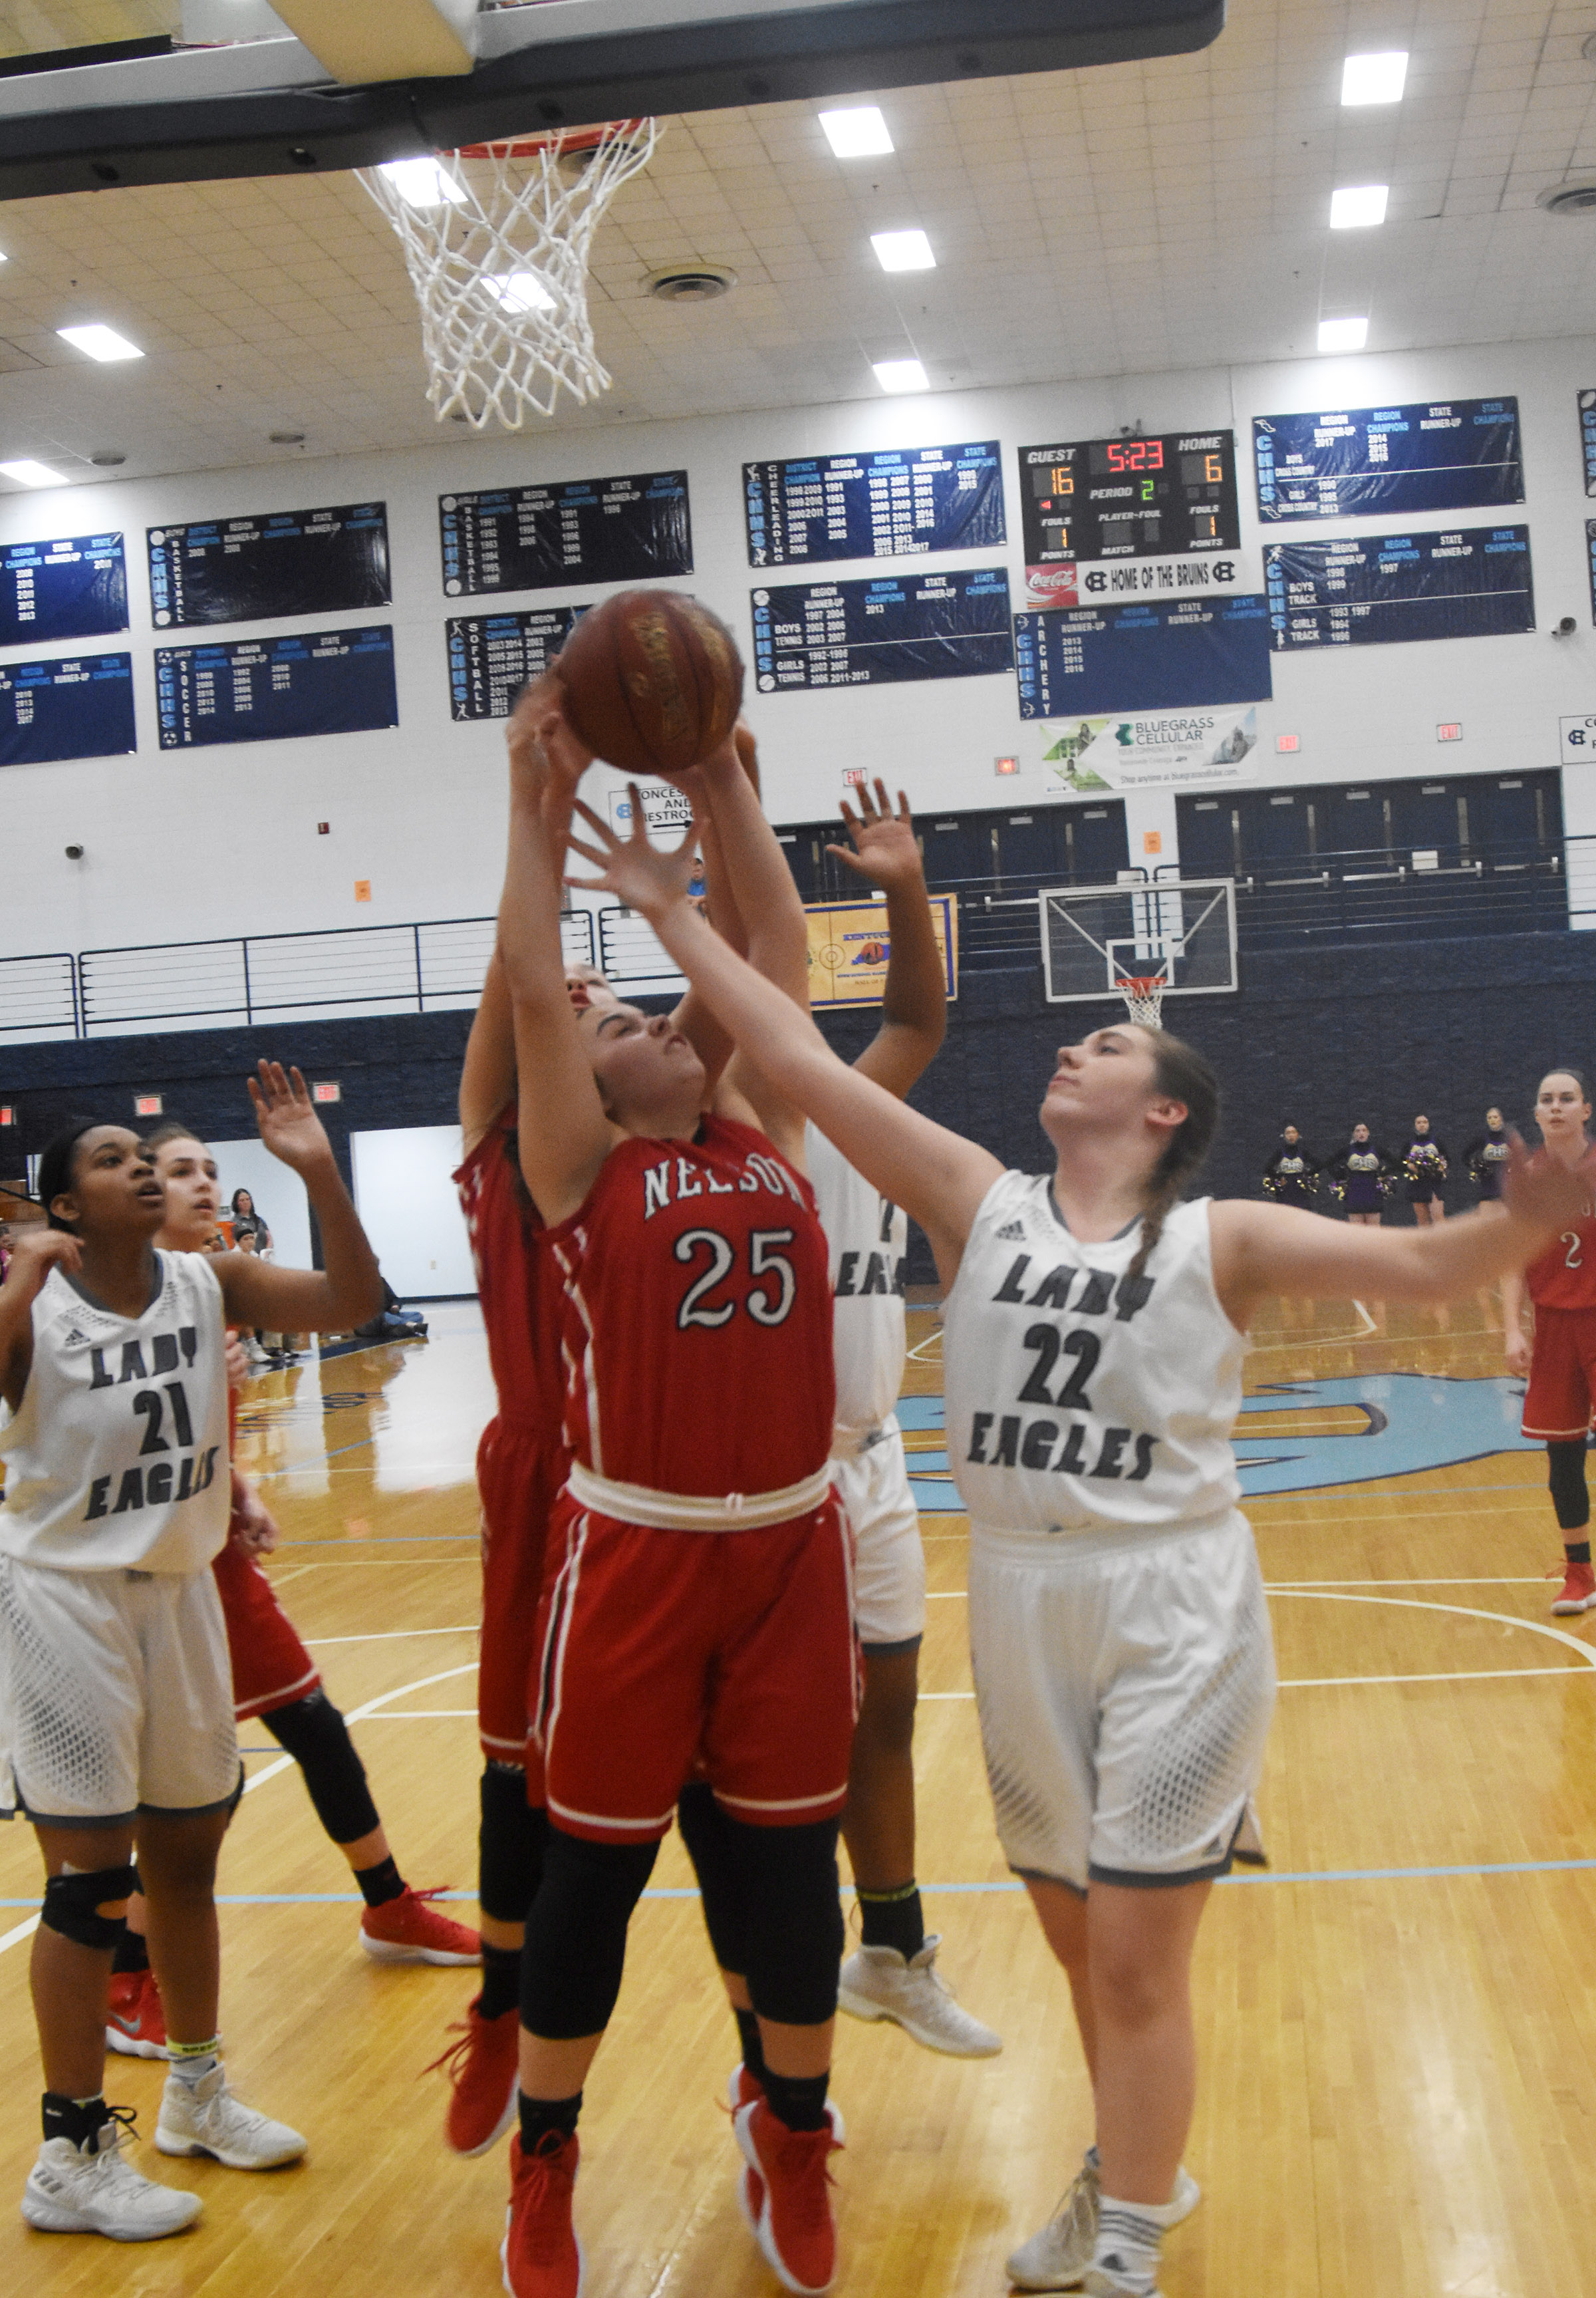 CHS freshman Abi Wiedewitsch tries to block a shot.